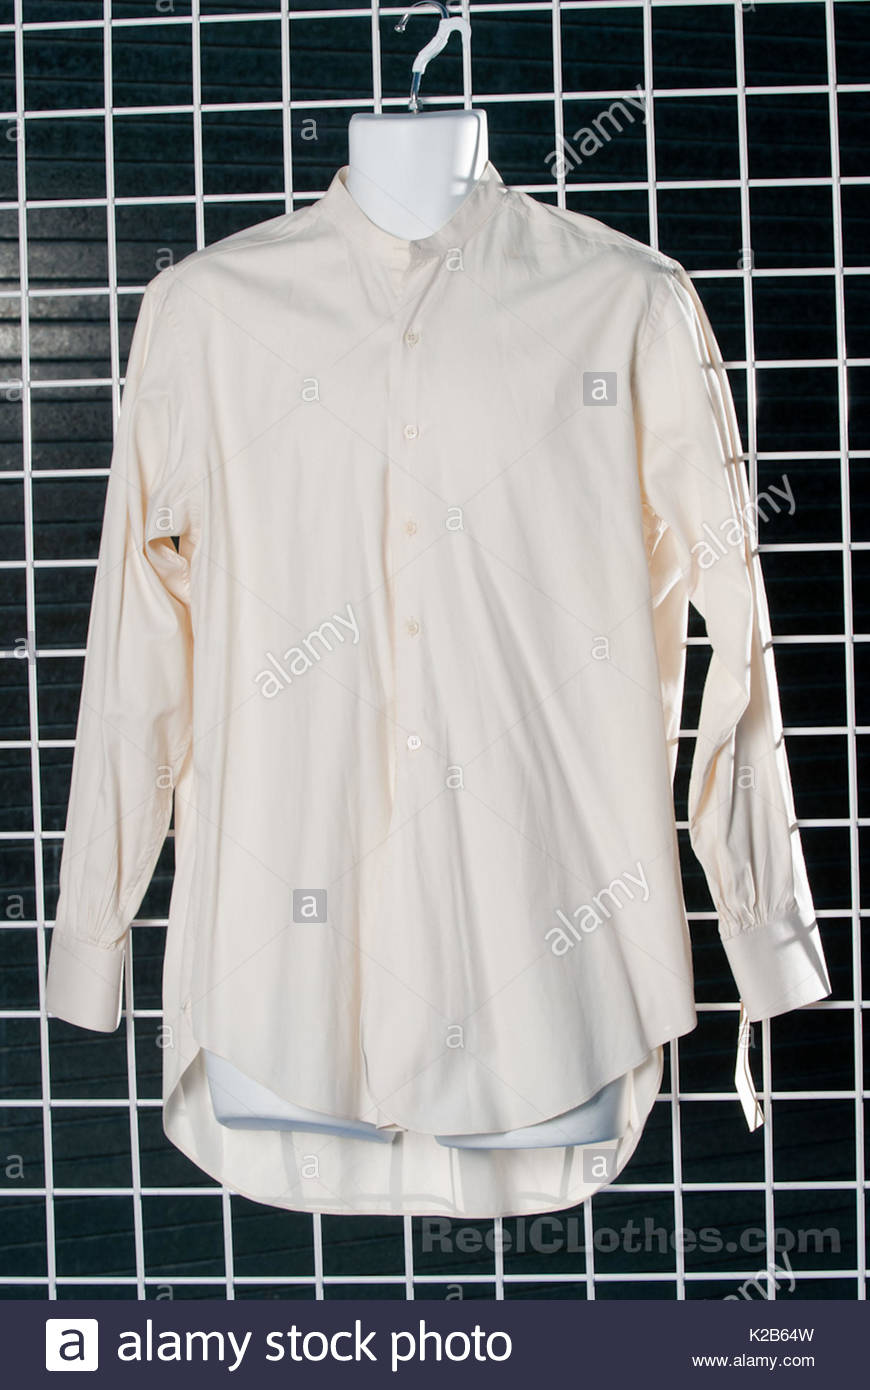 Brad Pitt's shirt from 'Legends of the Fall'. California mum Holly Haber has turned her passion for - Stock Image